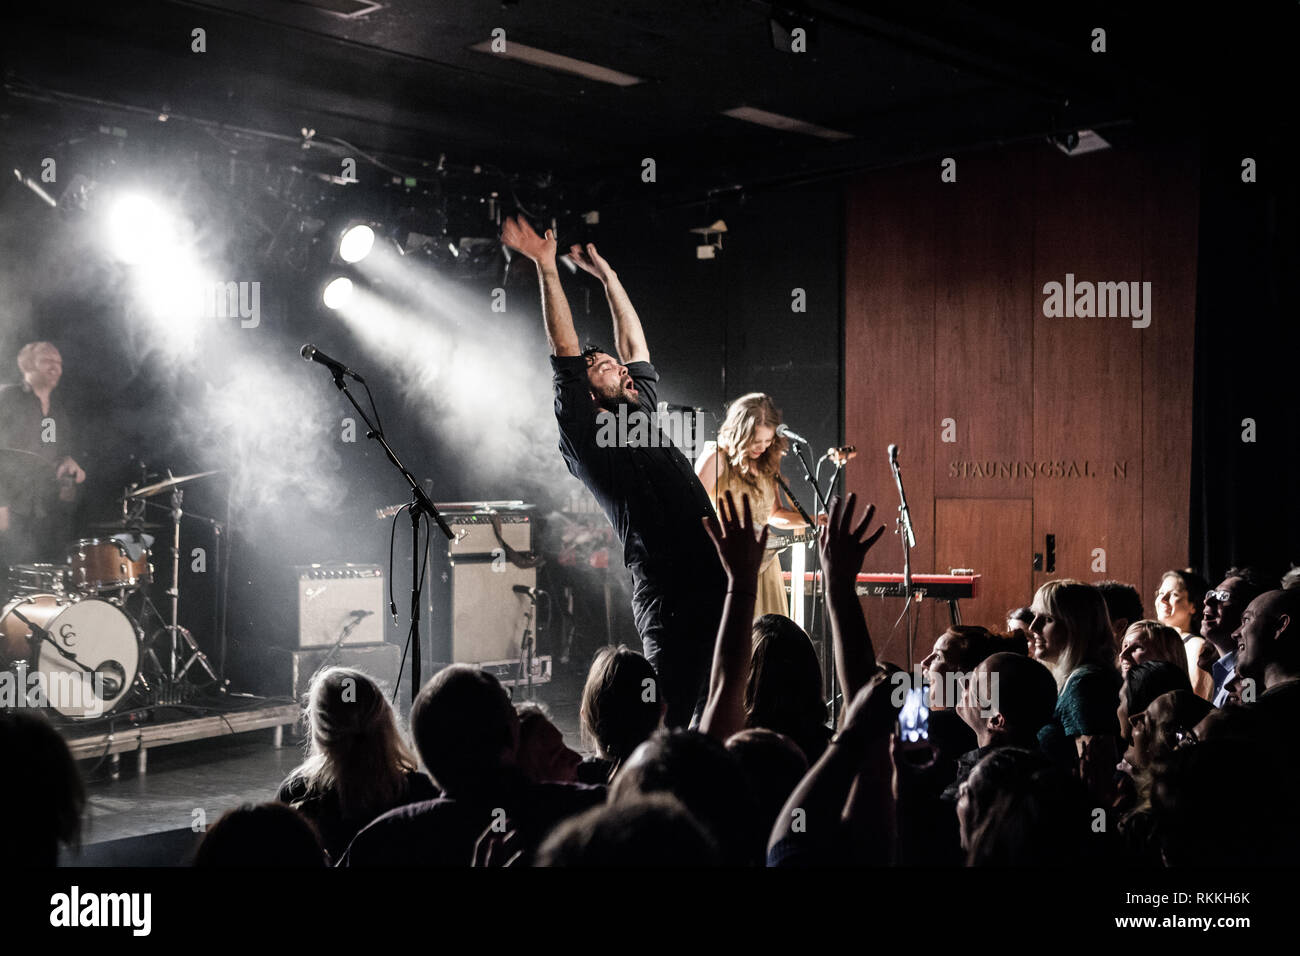 The American band The Lone Bellow performs a live concert at VEGA in Copenhagen. Here singer and musician Zach Williams is seen live on stage. Denmark, 05/02 2016. EXCLUDING DENMARK. - Stock Image